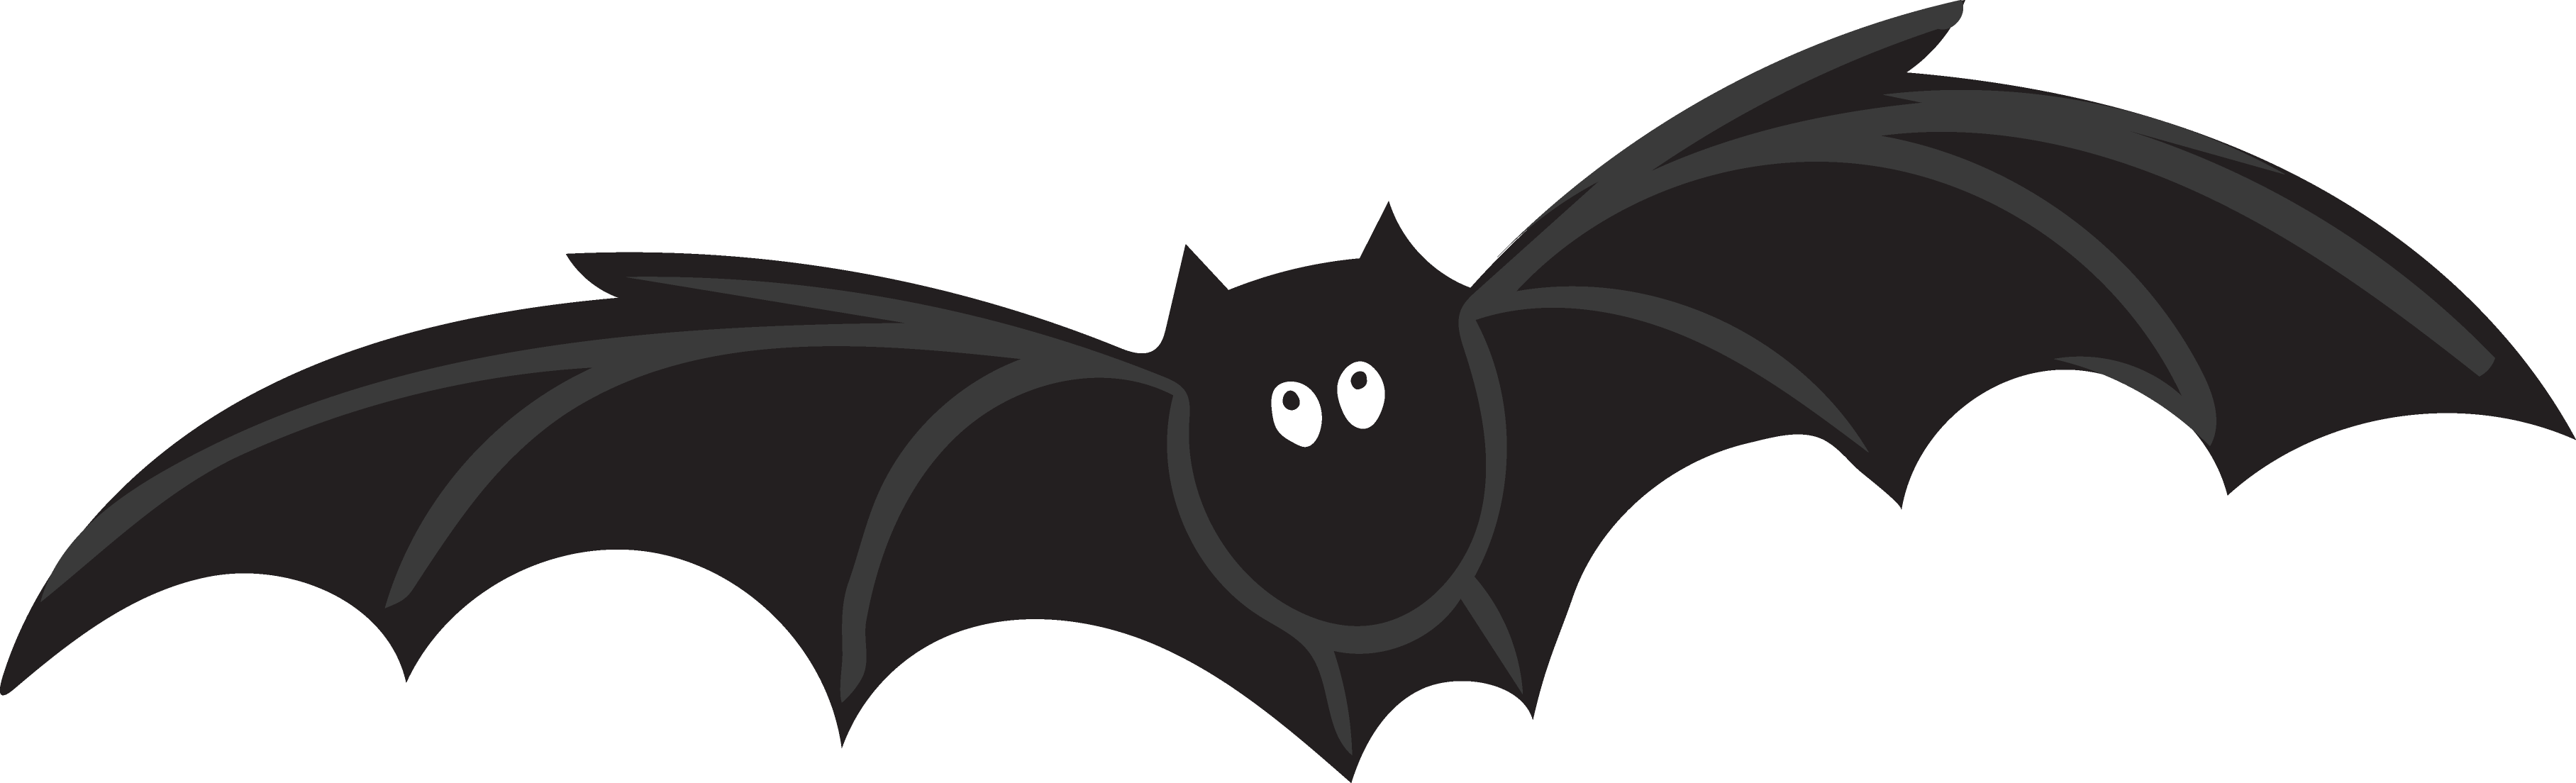 Bat from Trick Or Treat SVG Cut File